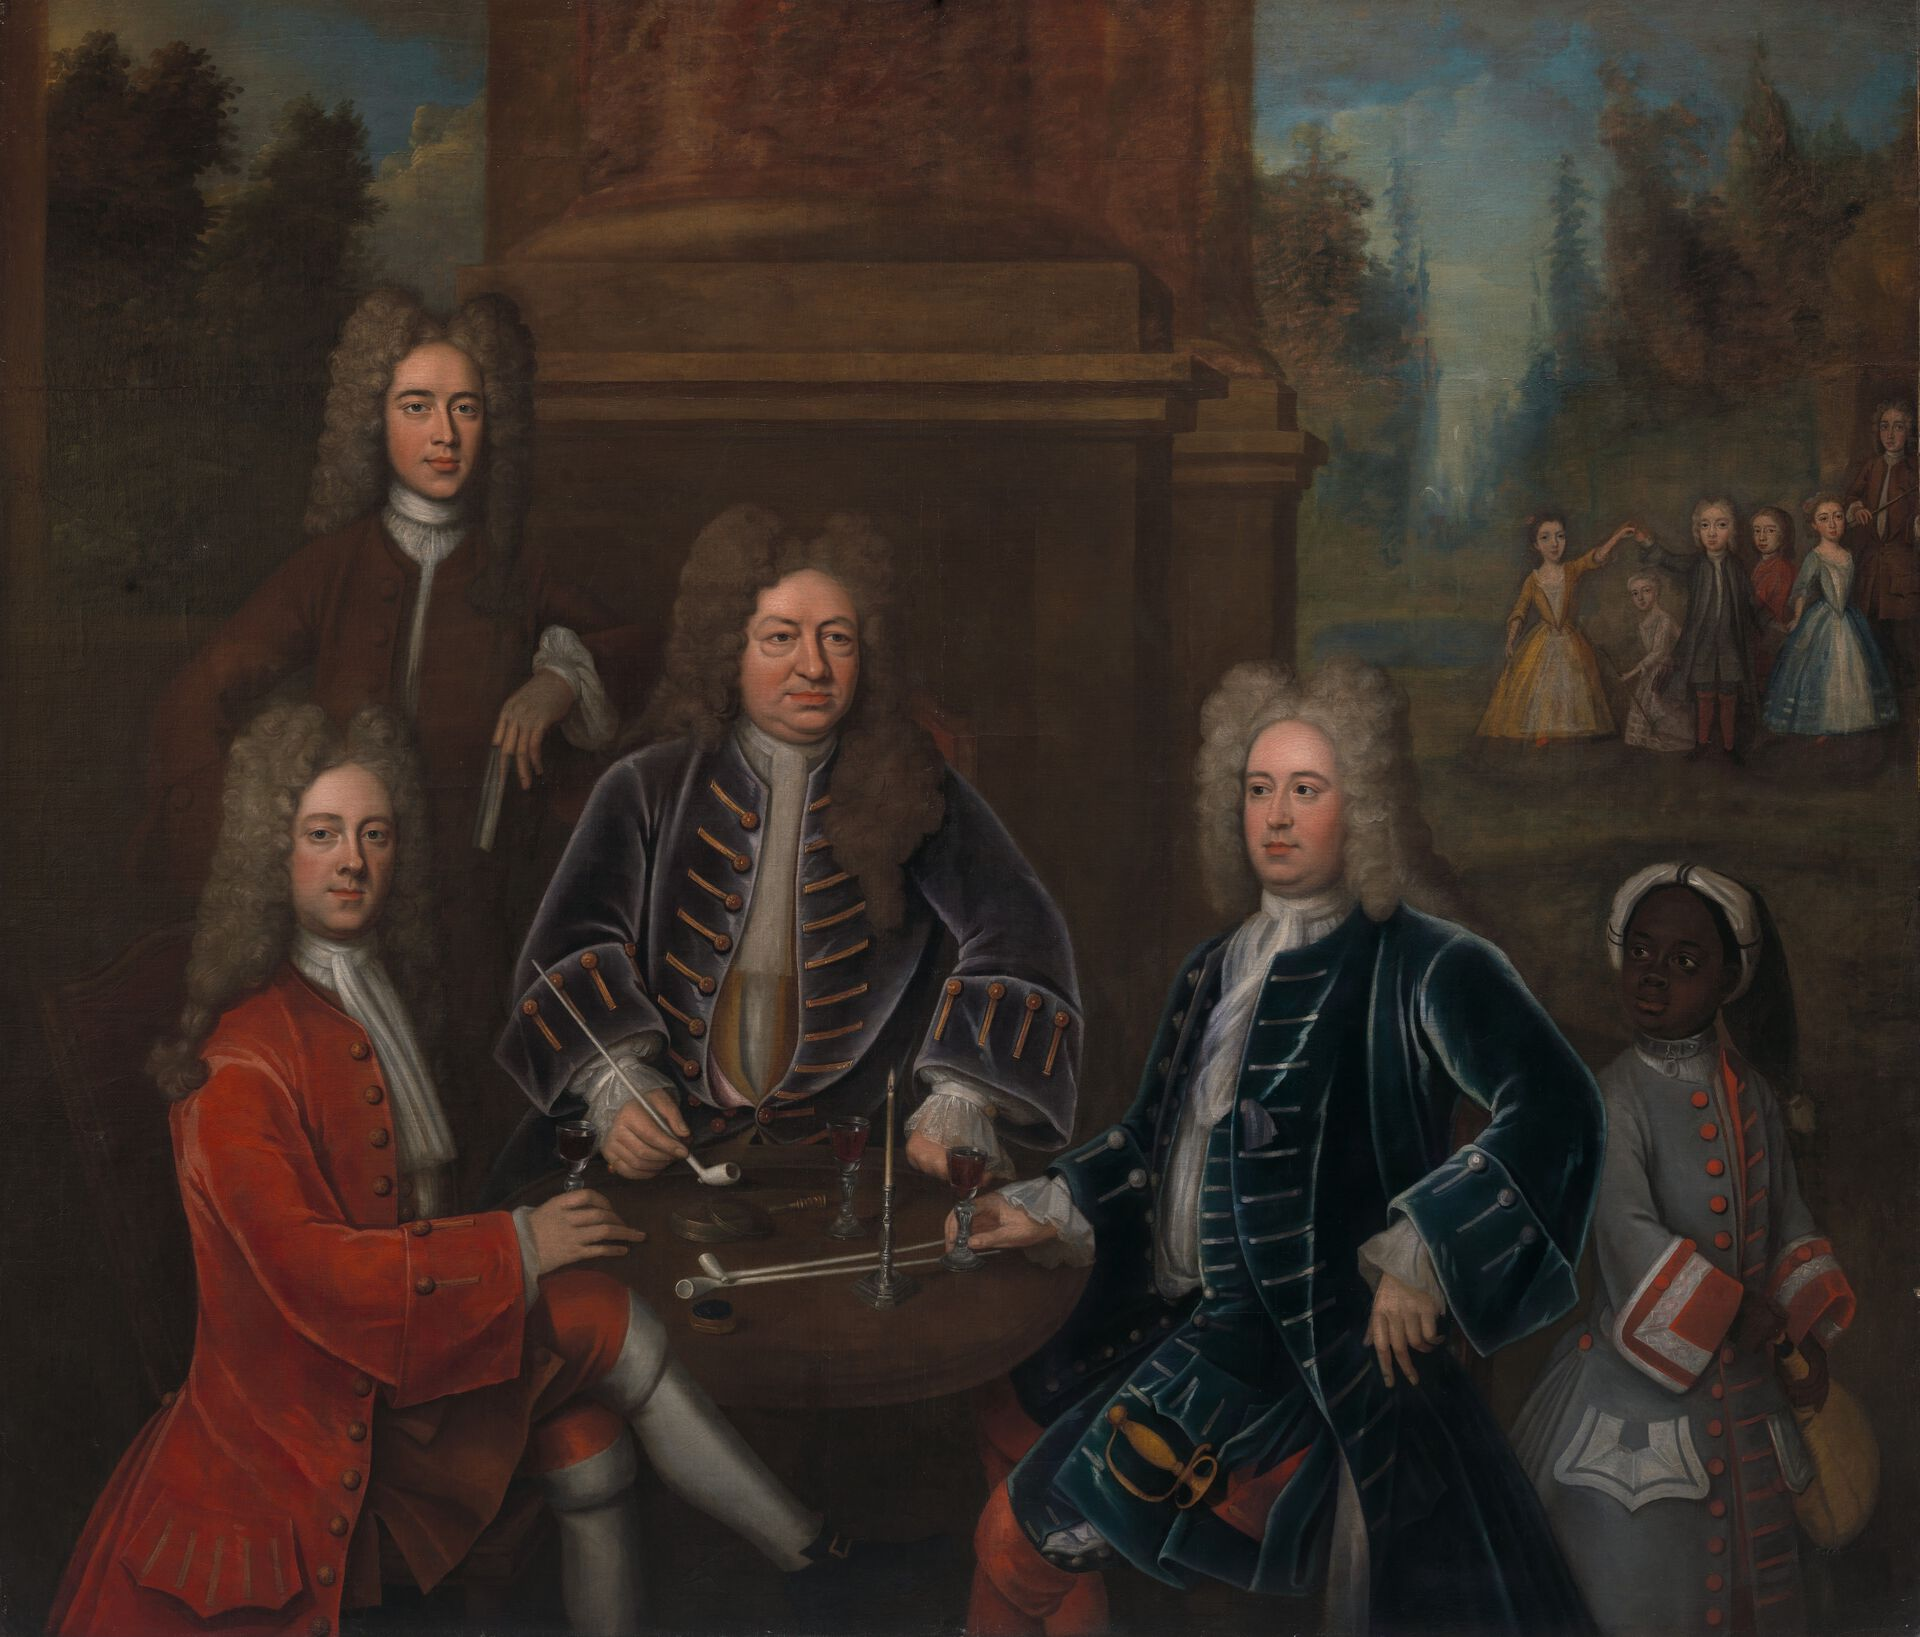 Attributed to John Verelst, The family of Elihu Yale and an Enslaved Child, ca. 1719, oil on canvas, Yale Center for British Art, Gift of Andrew Cavendish, eleventh Duke of Devonshire, B1970.1